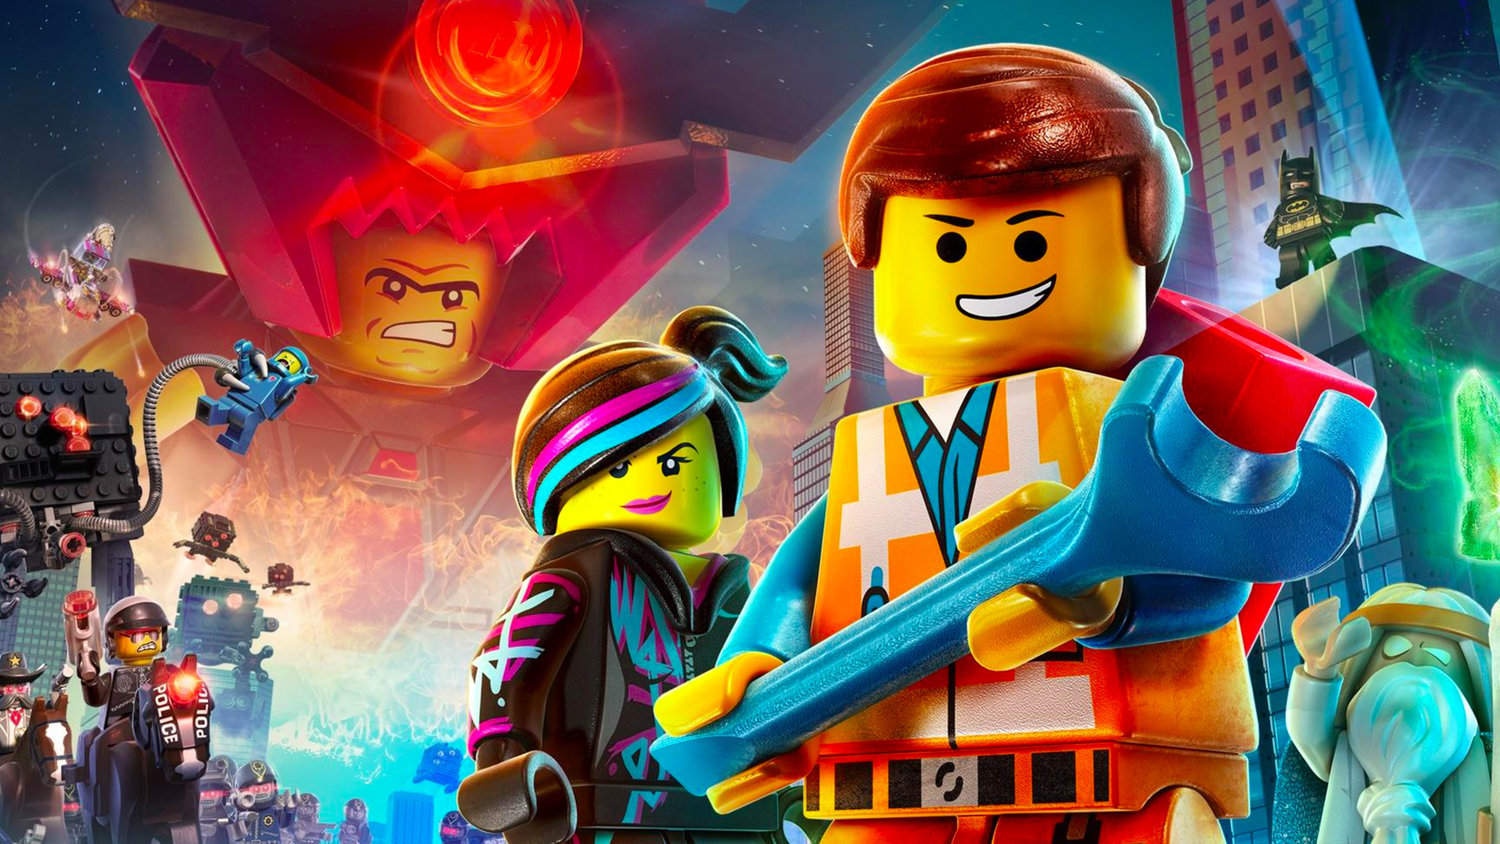 THE LEGO MOVIE 2 Will Be a